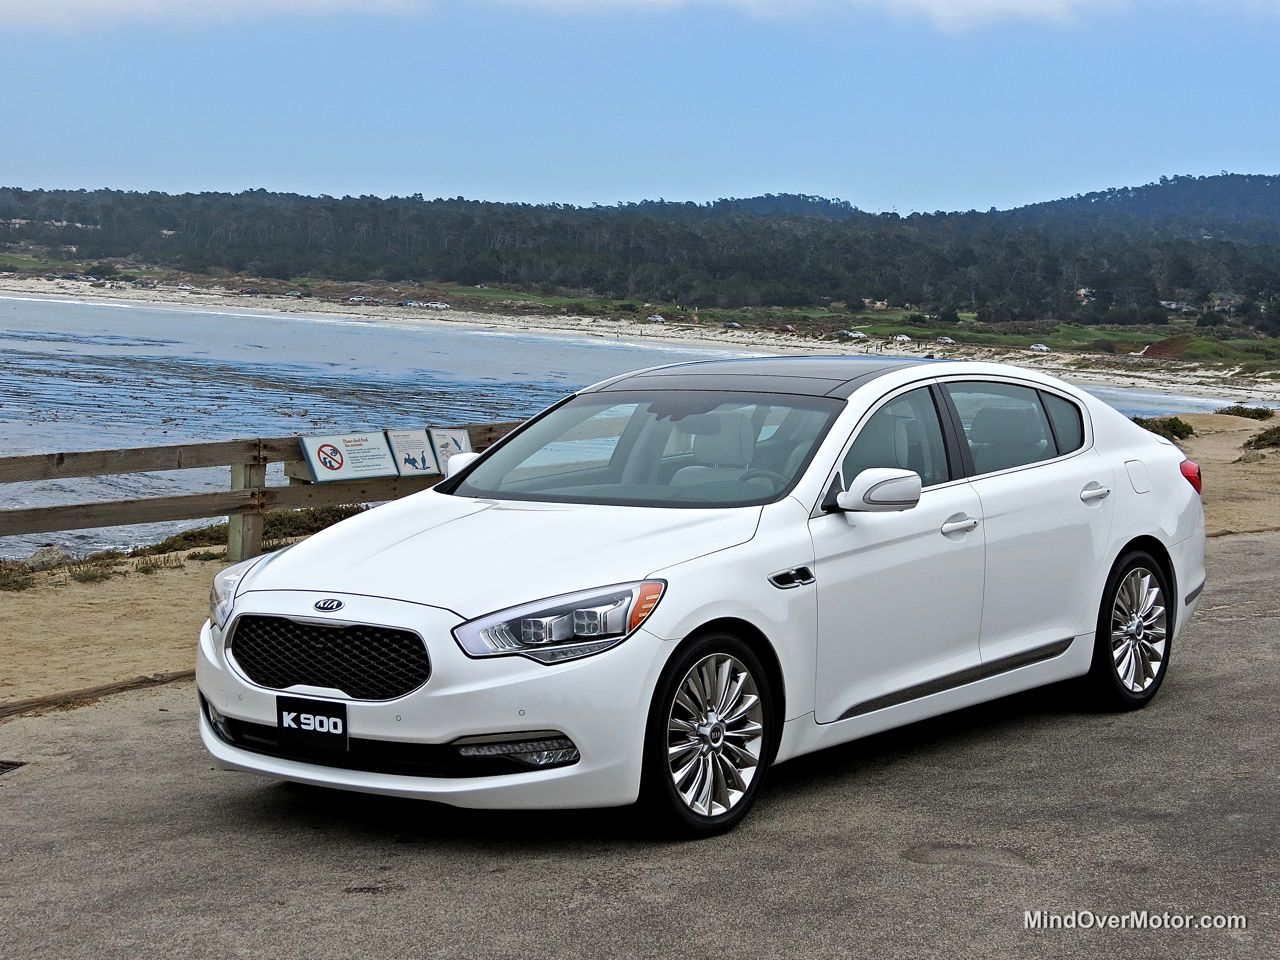 Kia K900 Pebble Beach